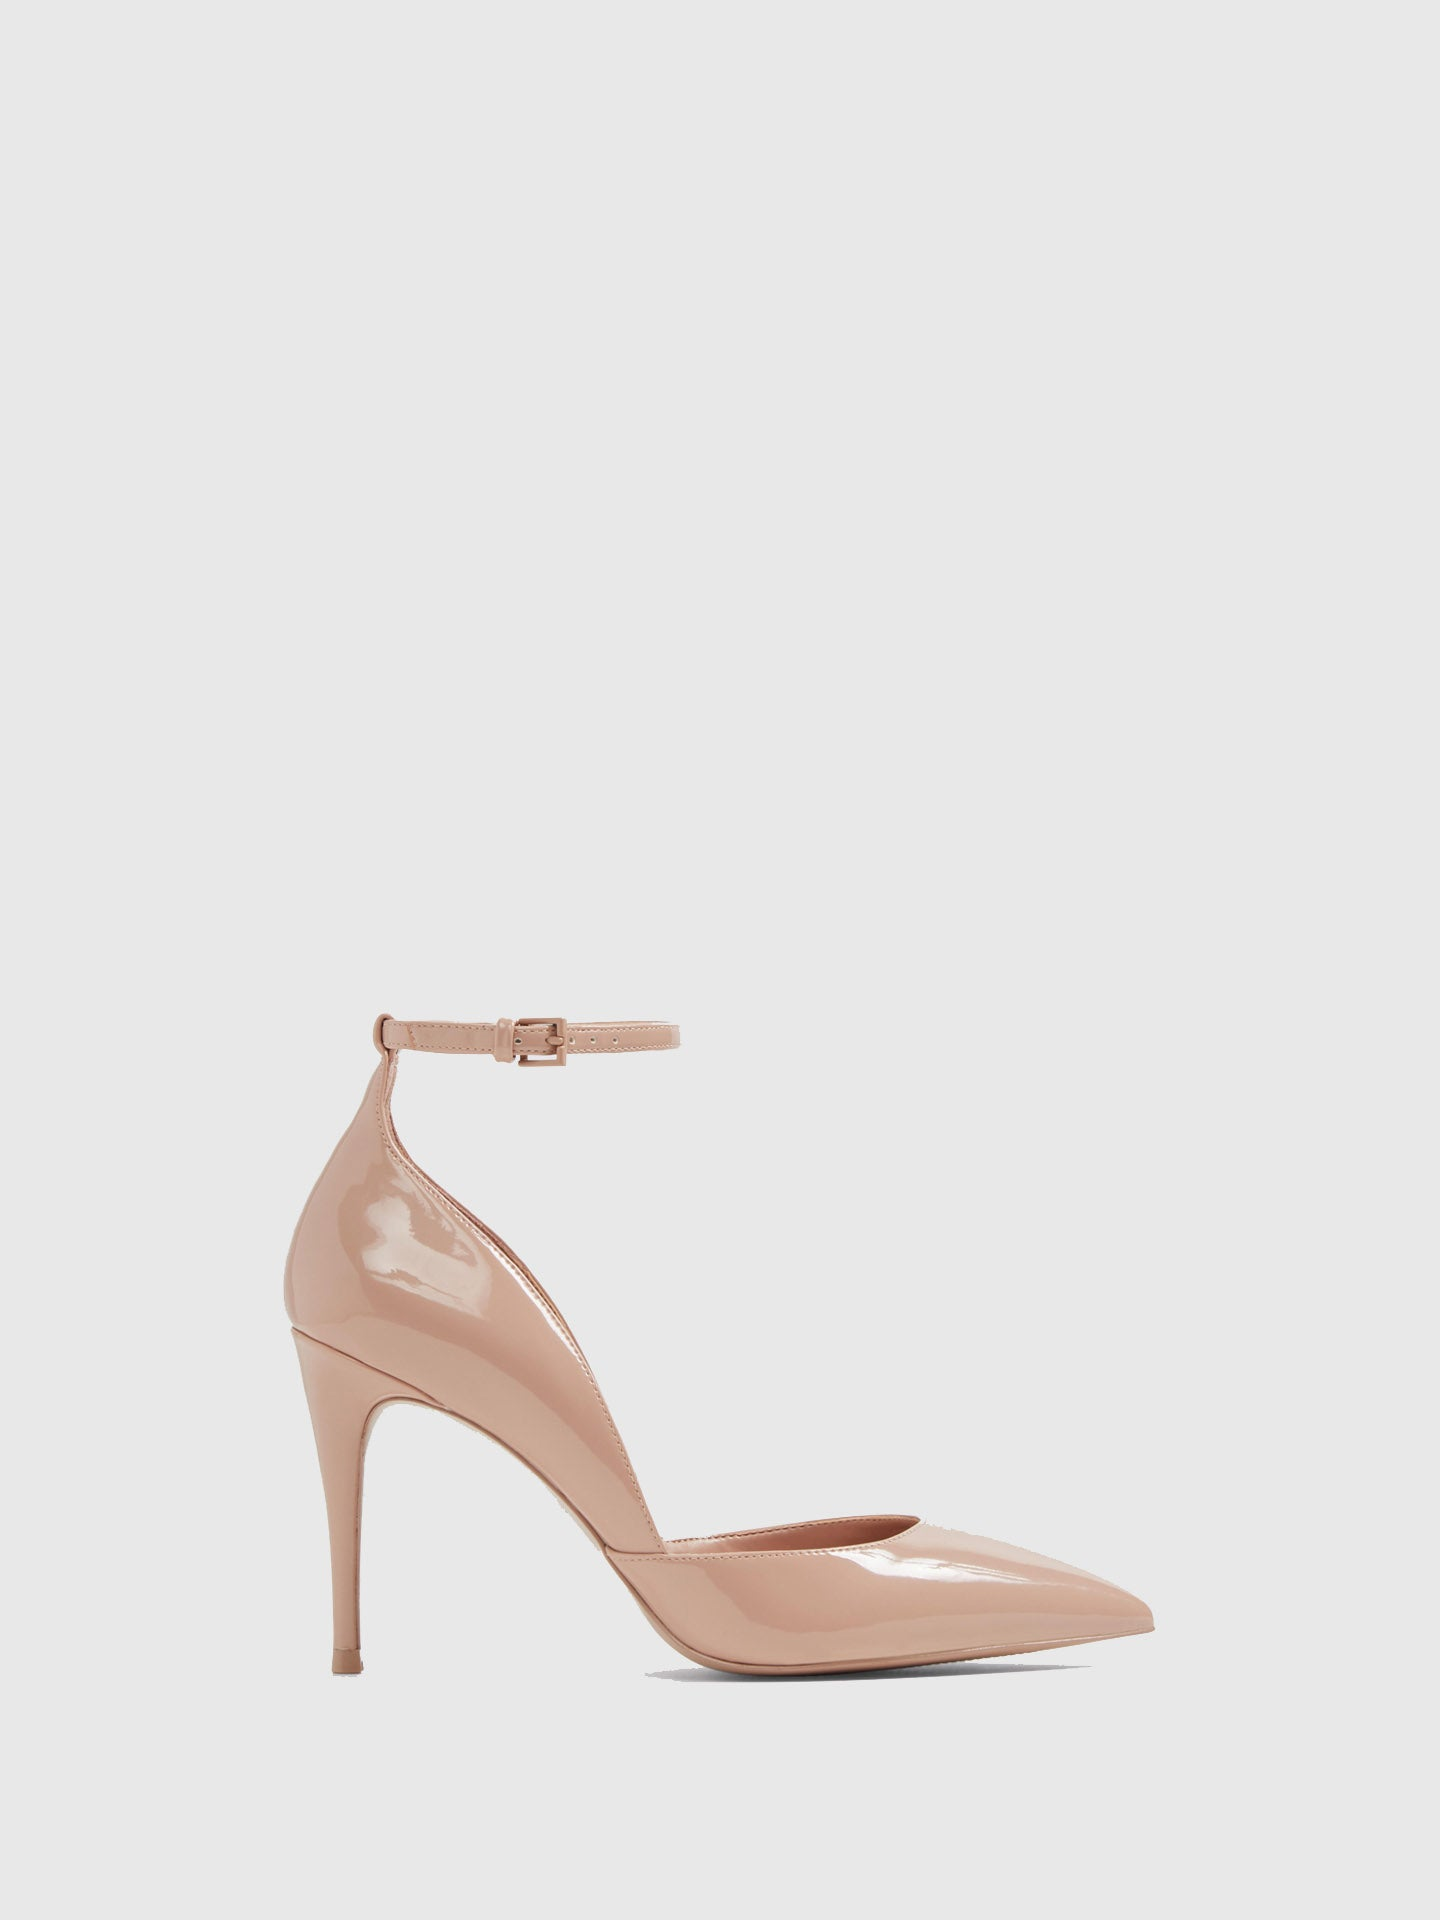 Aldo LightPink Ankle Strap Shoes